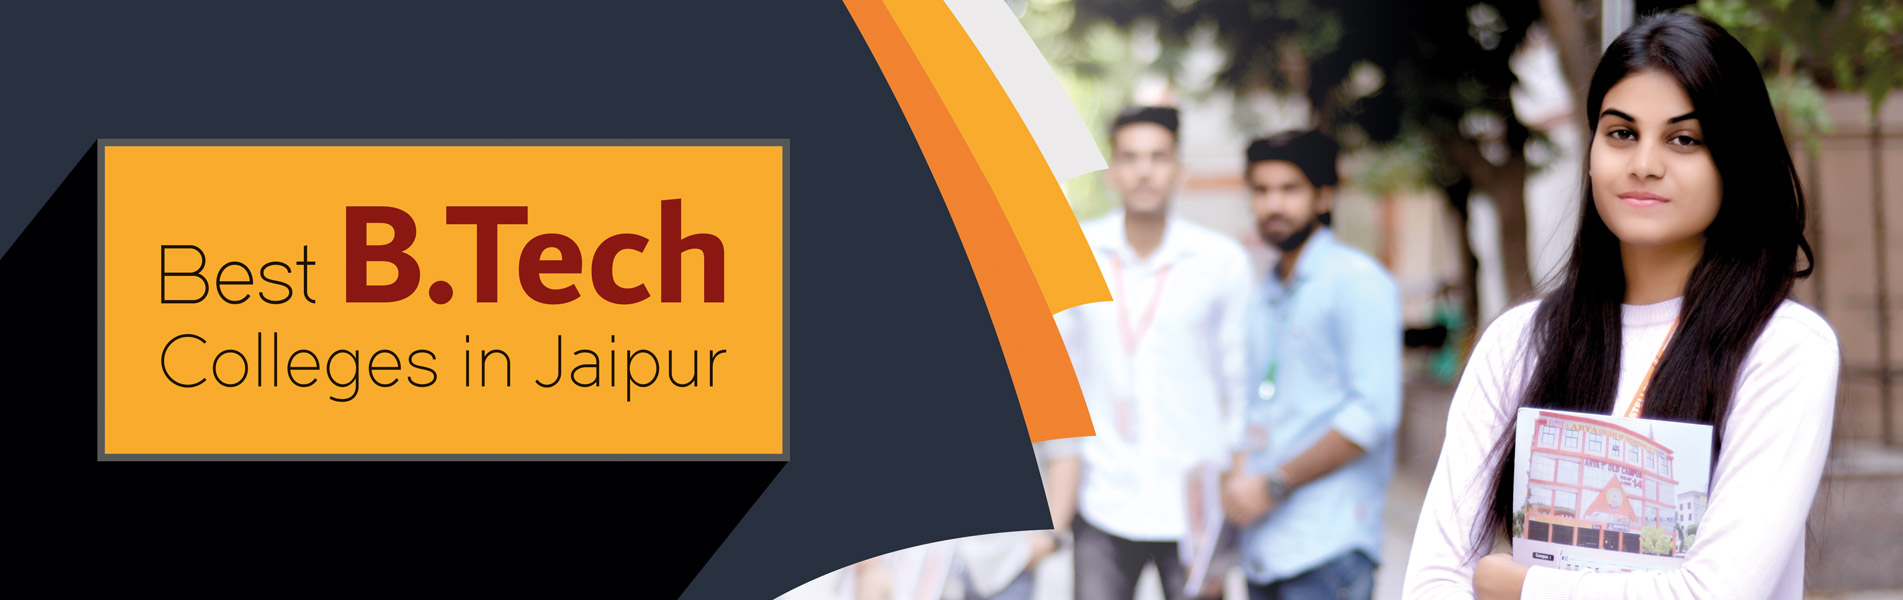 Best-B-Tech-Colleges-in-Jaipur